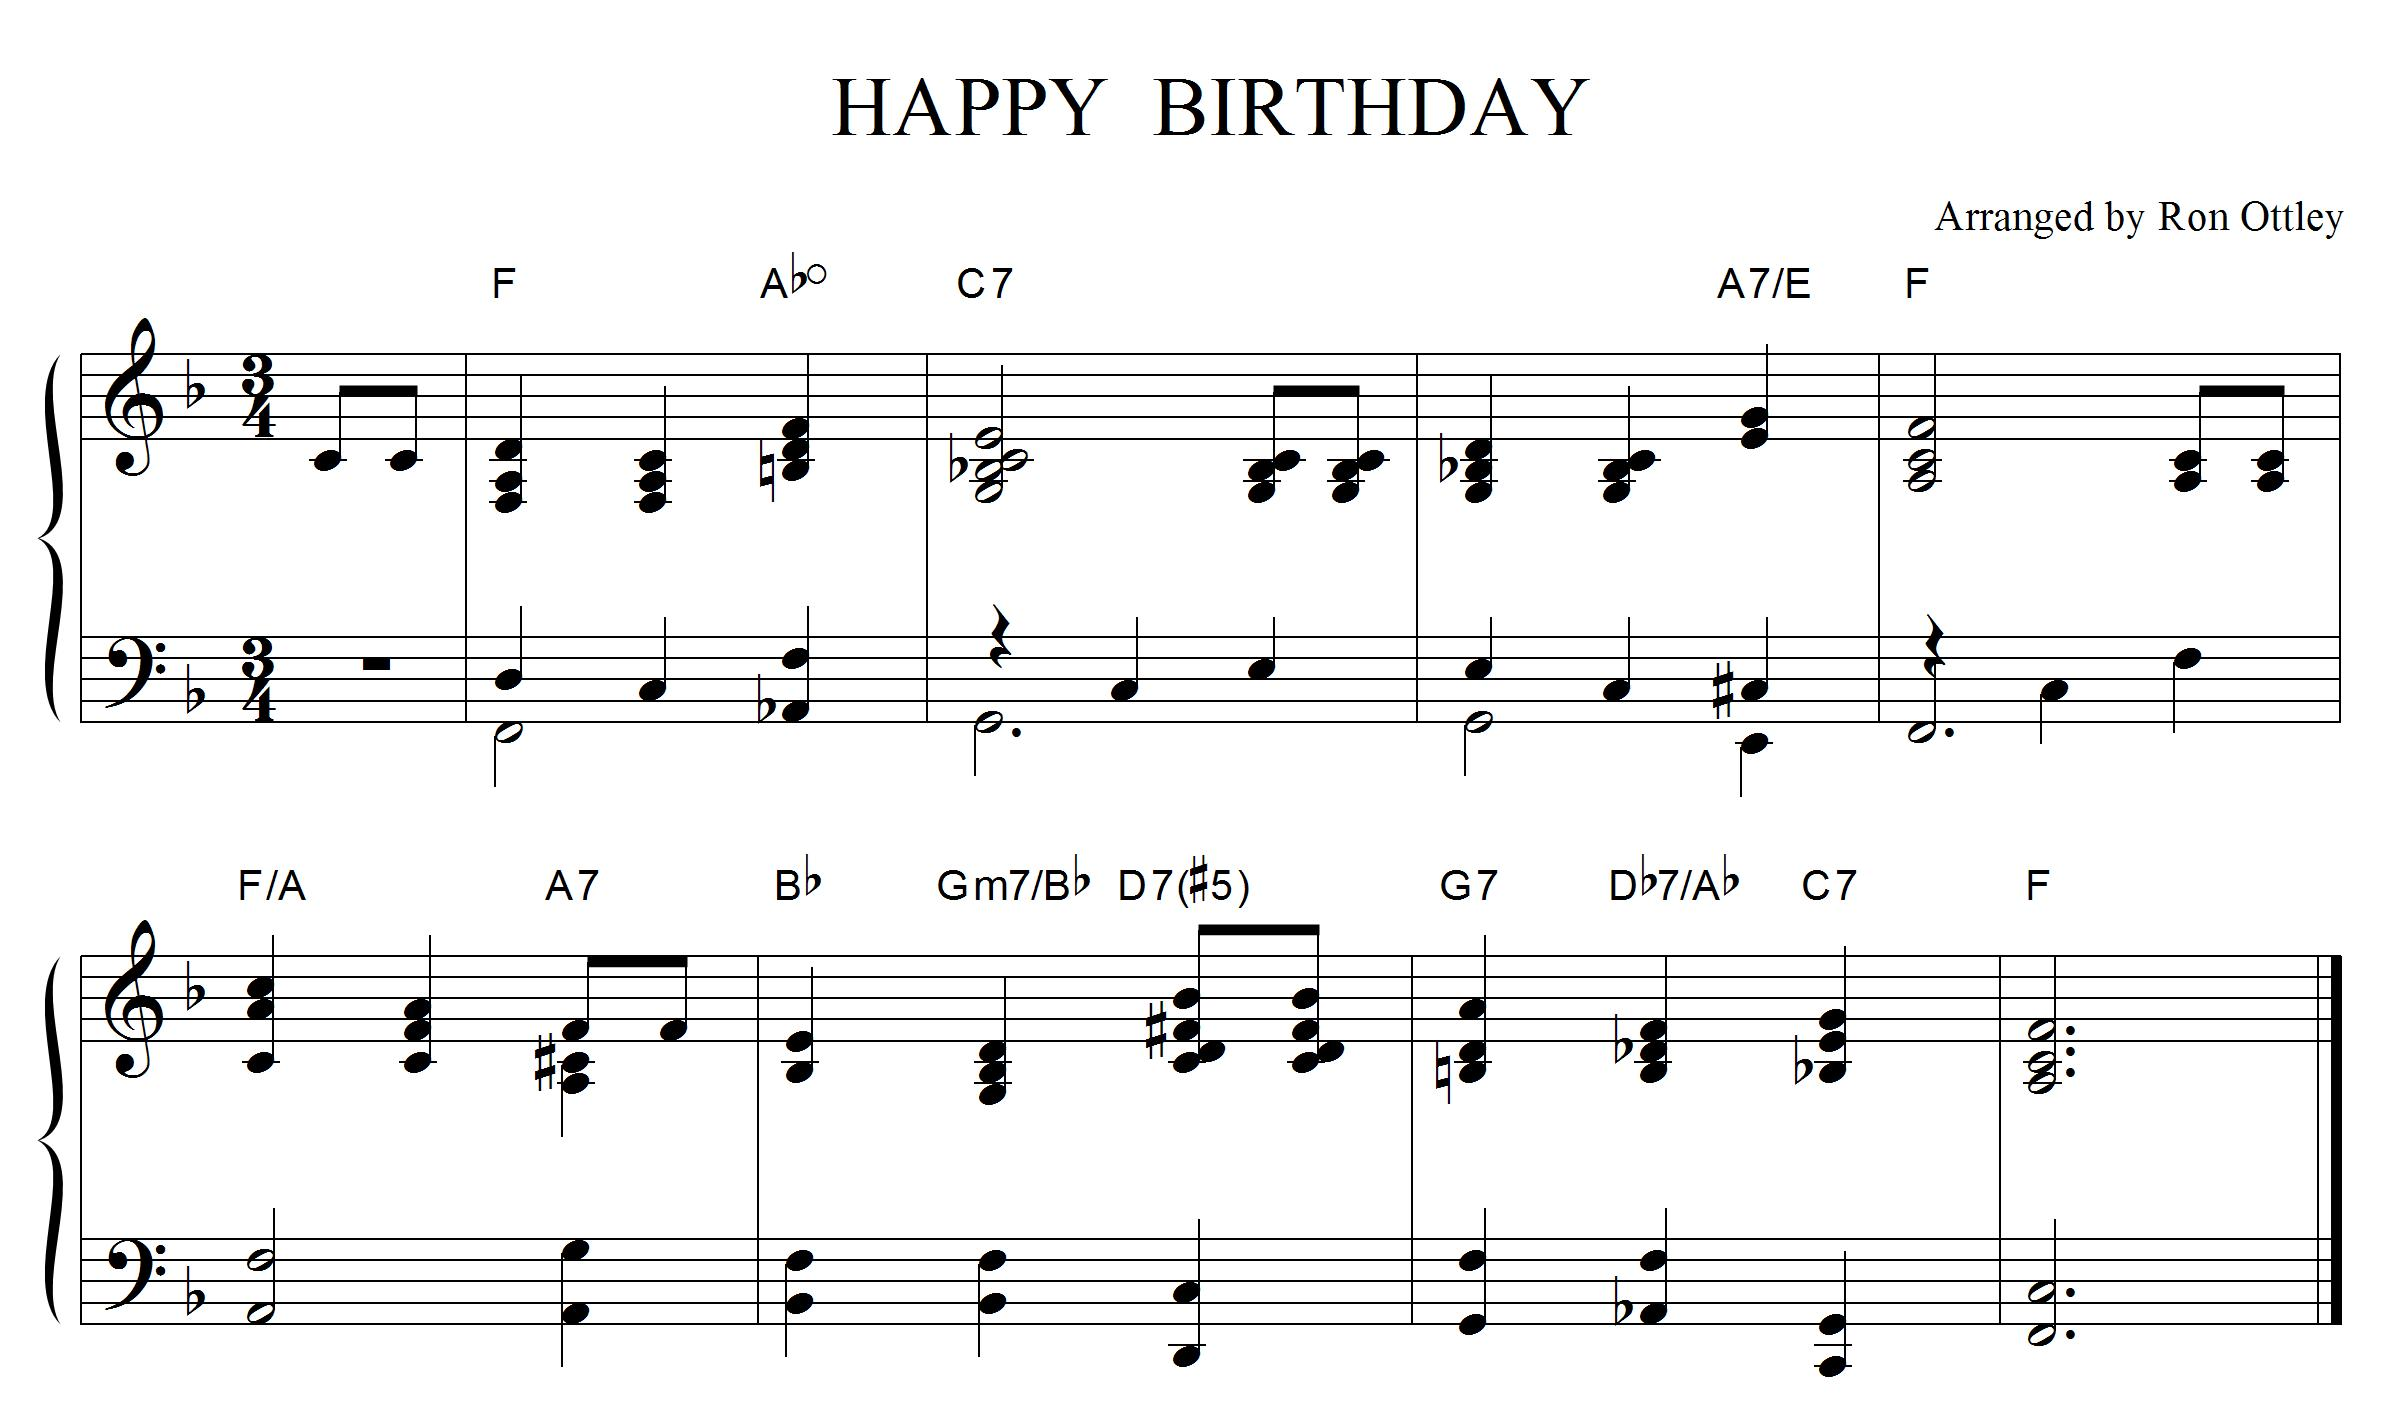 happy birthday piano arrangement ; happy-birthday-jazz-piano-sheet-a1e1aede4f798061b65953ec433a32f6